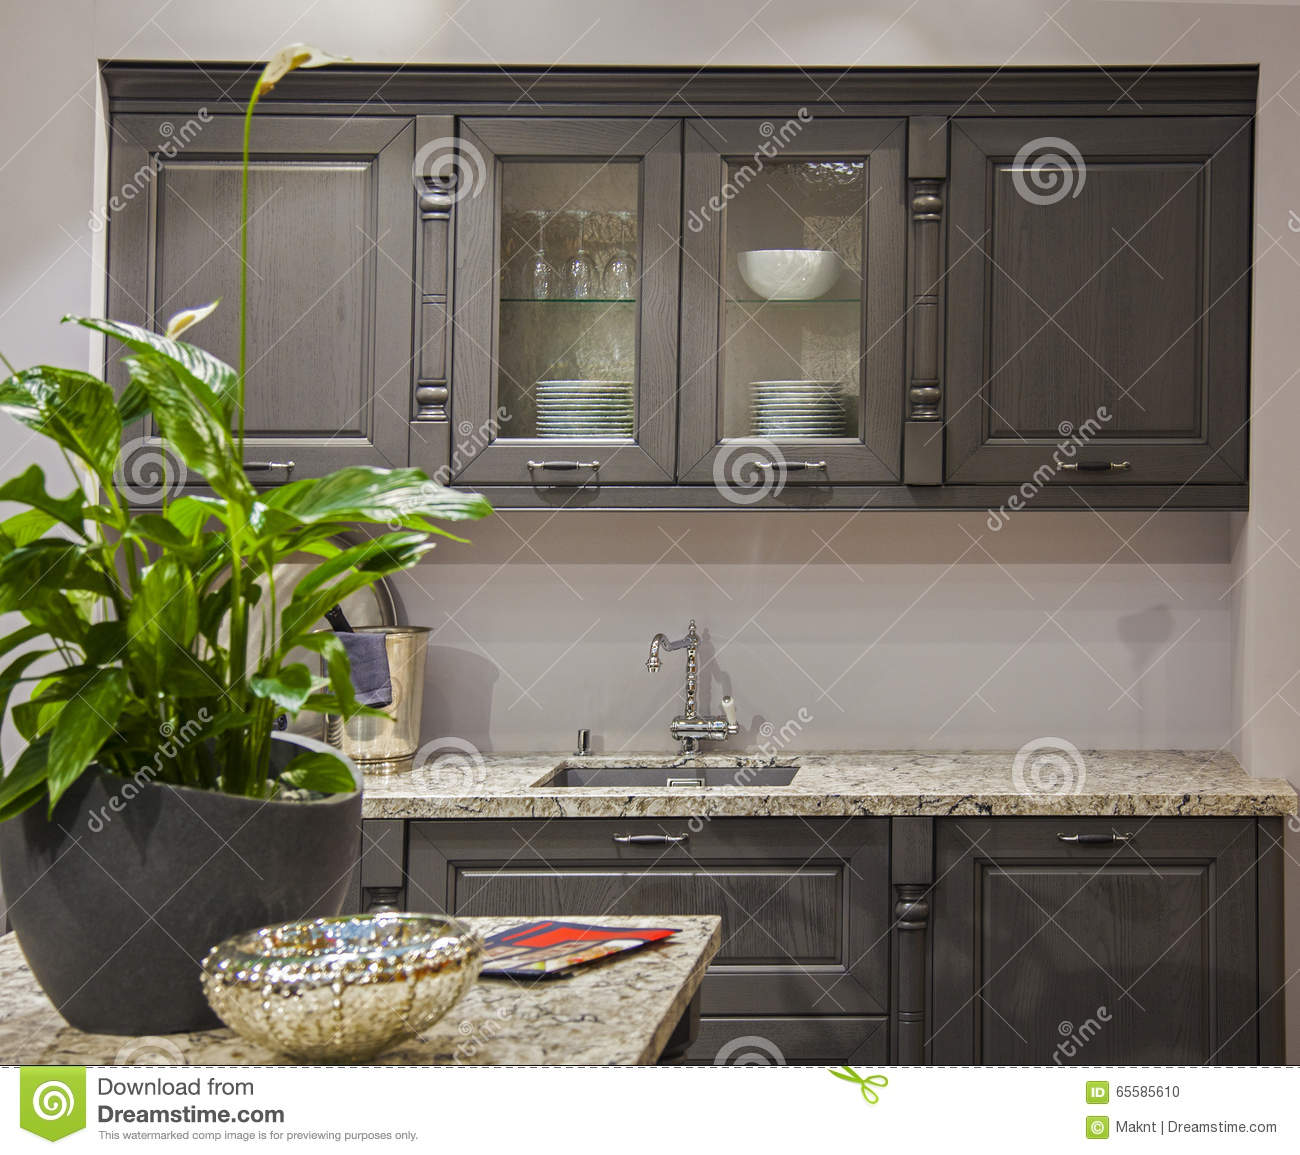 Kitchen unit in the interior